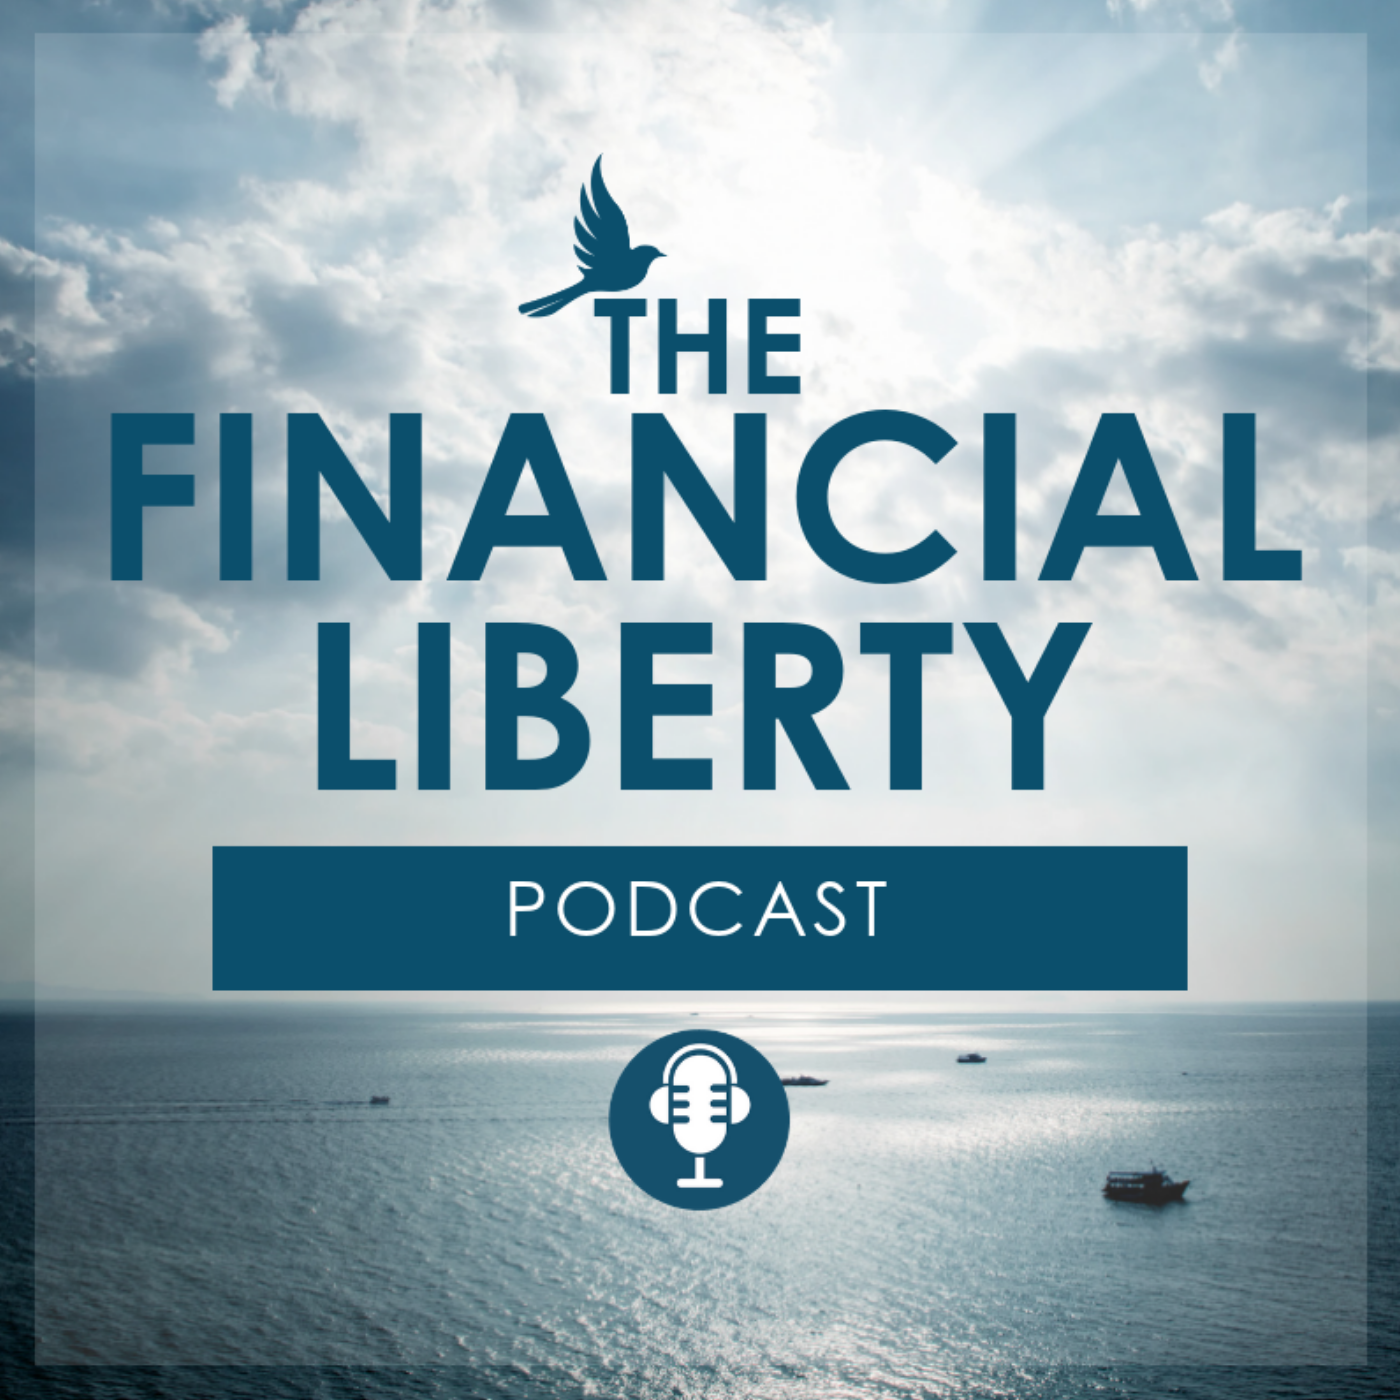 The Financial Liberty Podcast